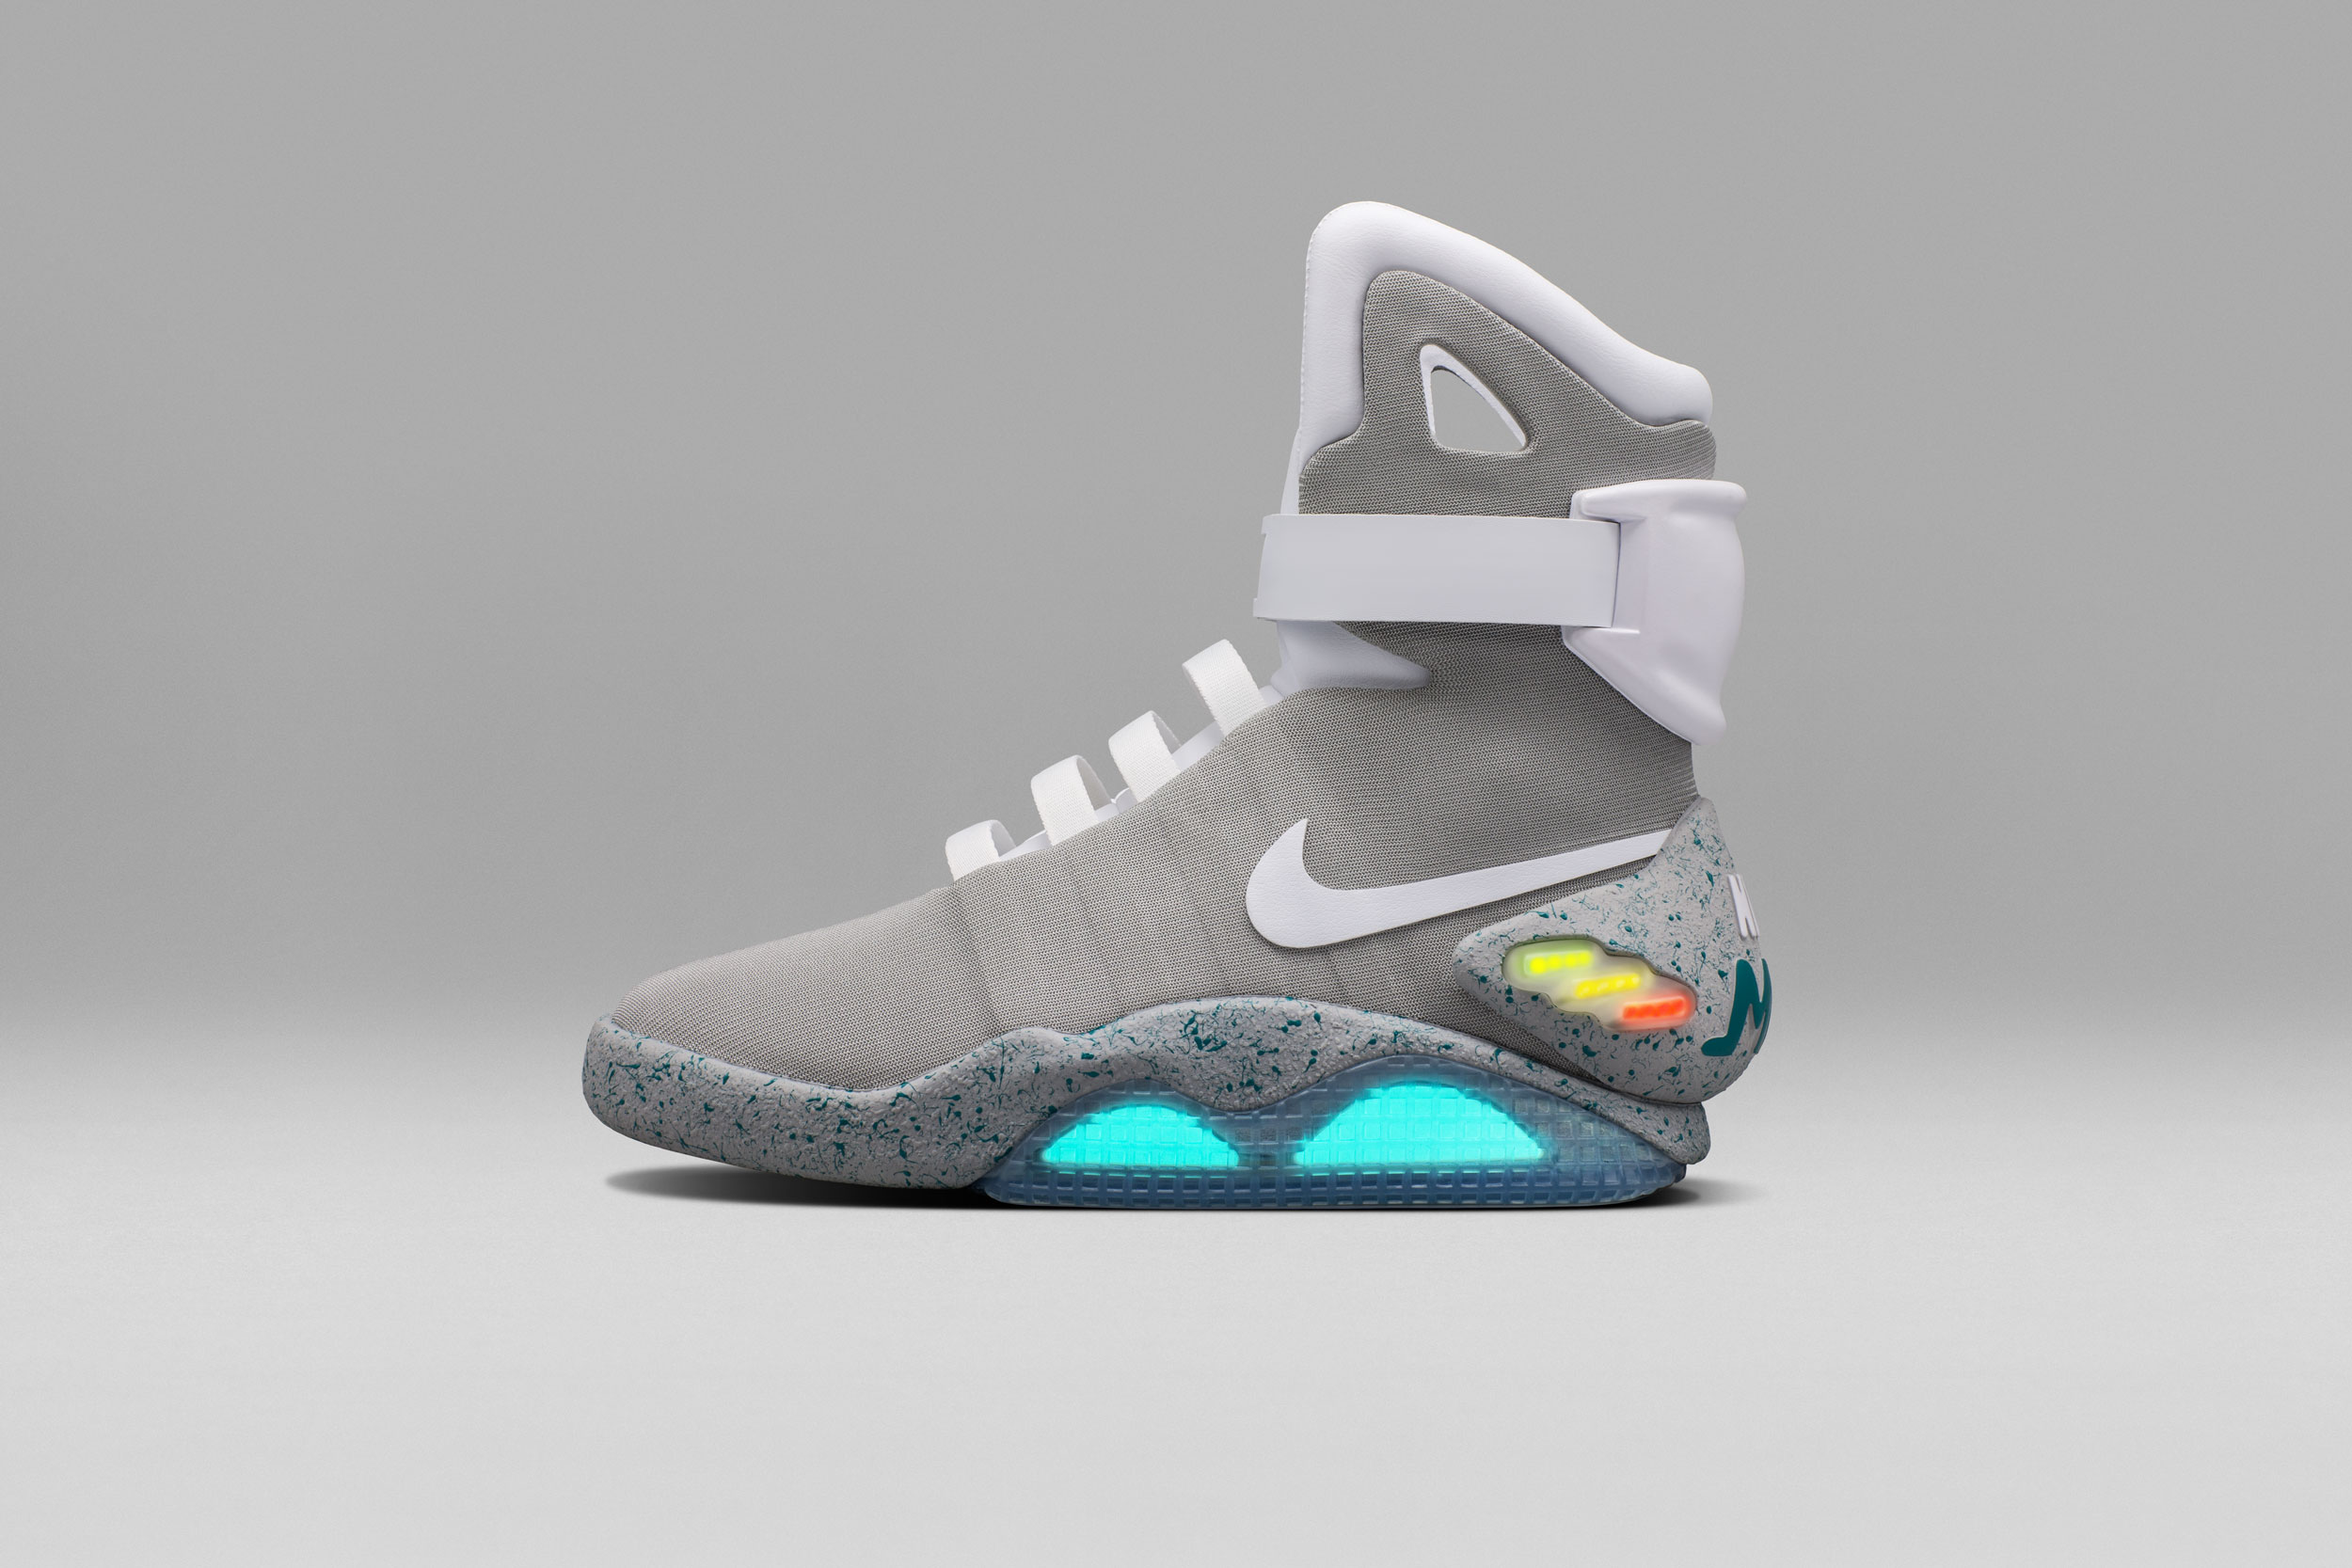 Nike Mags(Project EARL) - Tinker Hatfield & Tiffany Beers